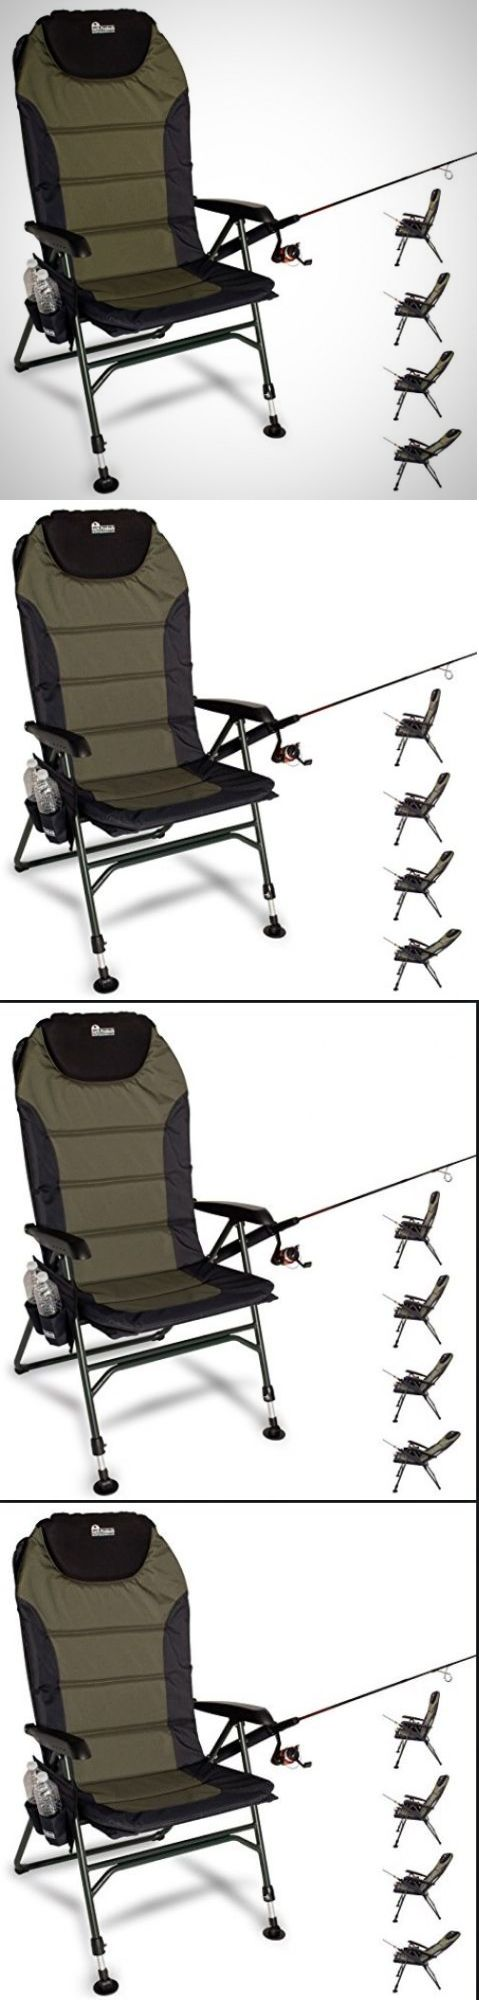 Furniture amp accessories 26 quot camo padded folding anti gravity chair - Chairs And Seats 19985 Fishing Chair Outdoor Adjustable Legs Comfort Fun Portable Folding Cup Holders